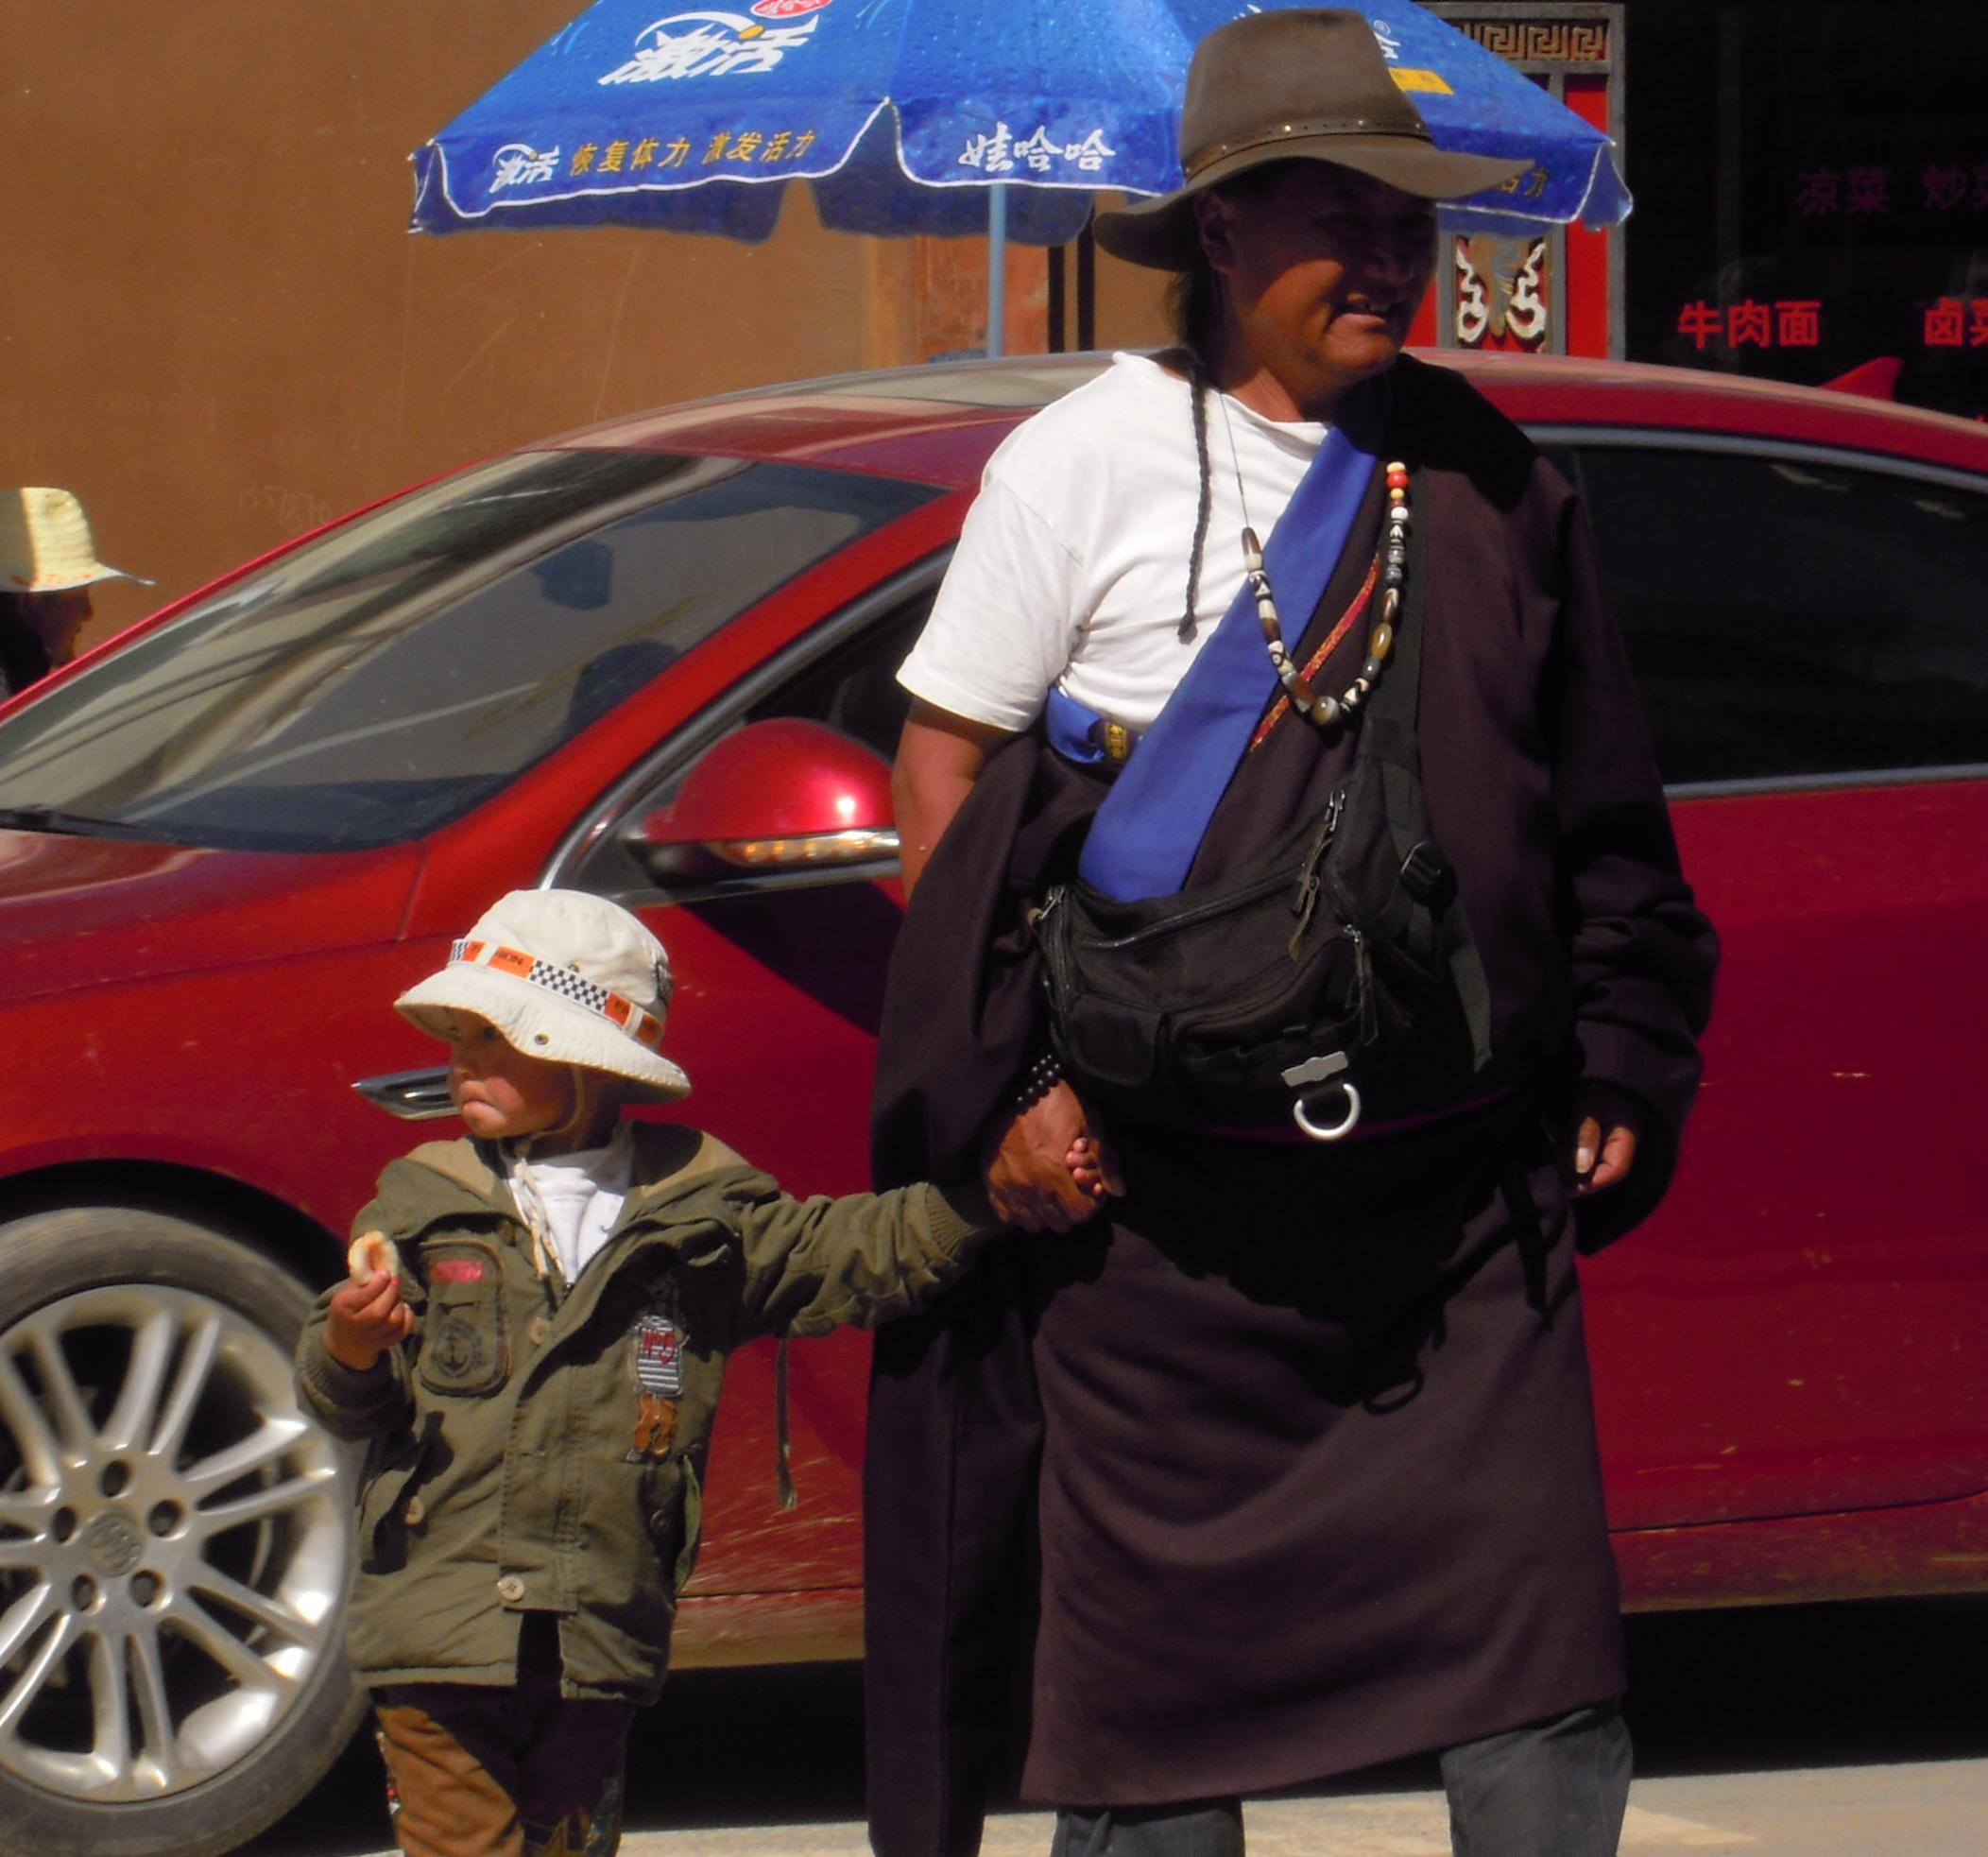 Pa and son crossing the street in Hongyuan.